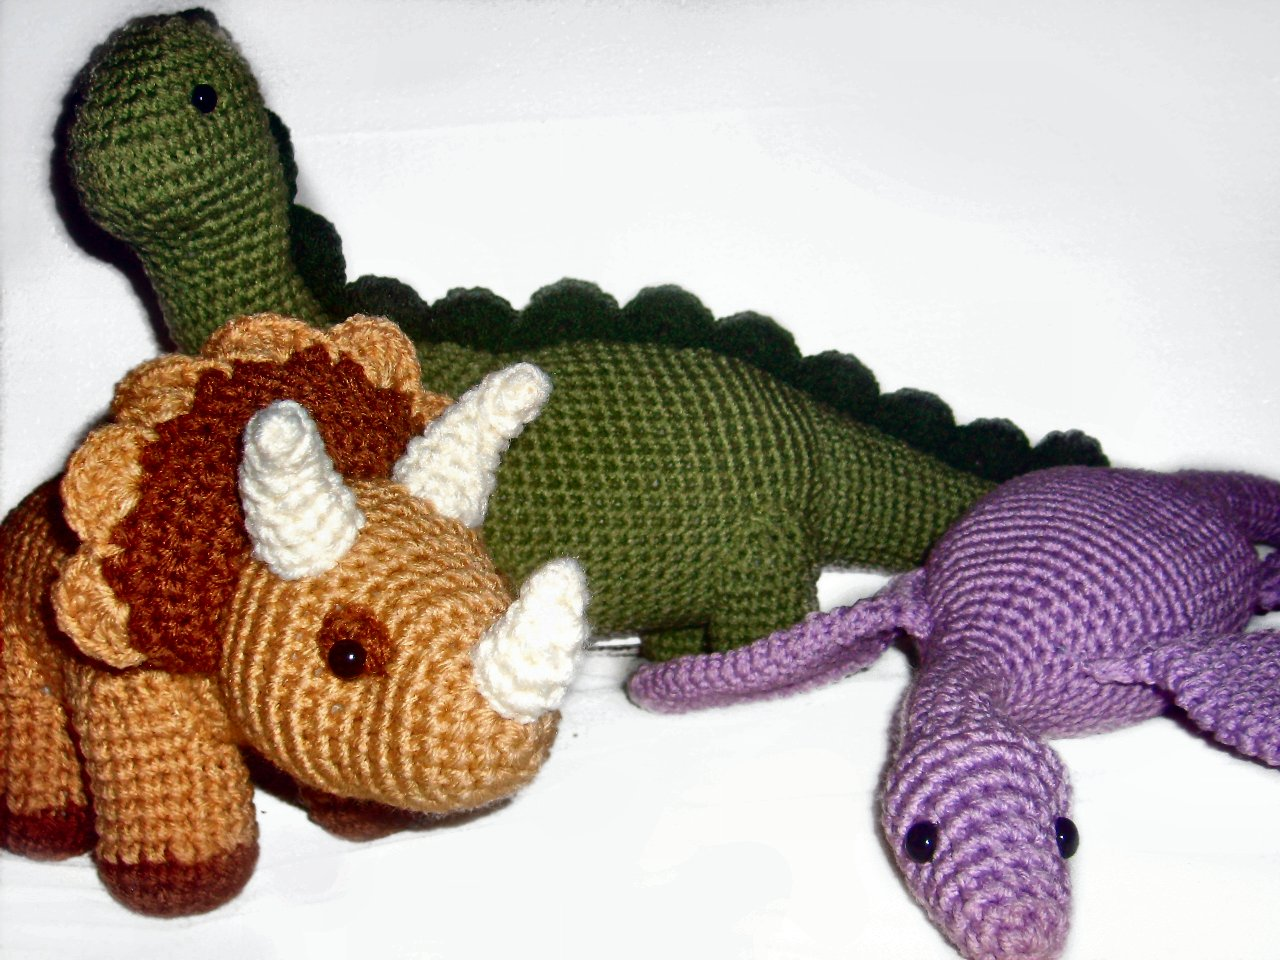 Crochet Dinosaur : Crochet Dinosaur Related Keywords & Suggestions - Crochet Dinosaur ...